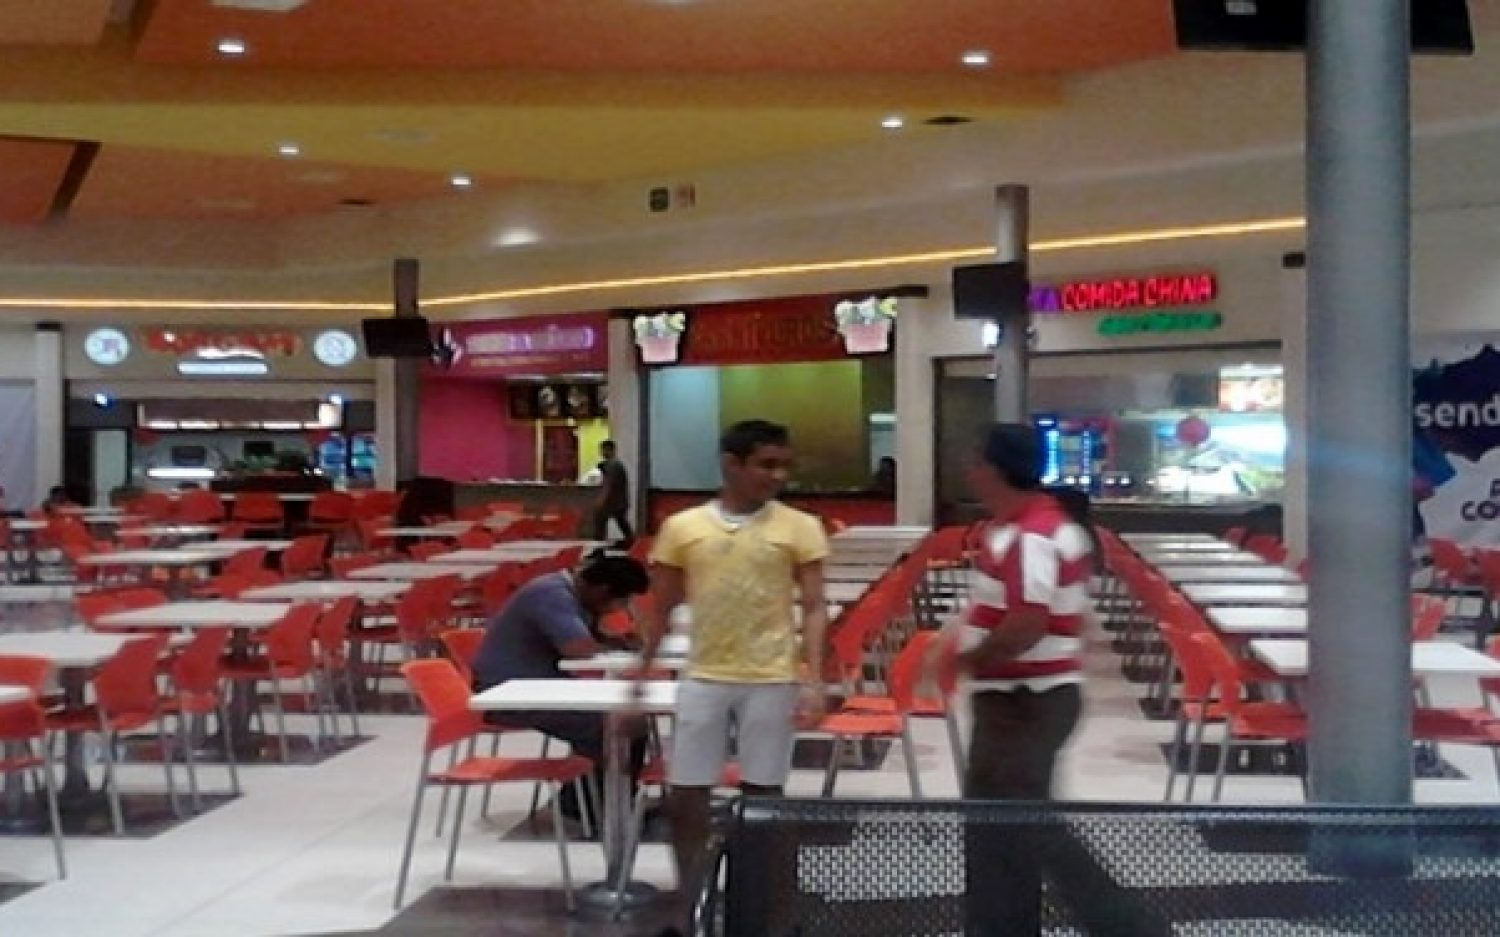 Co-Plaza Sendero Villahermosa (65)